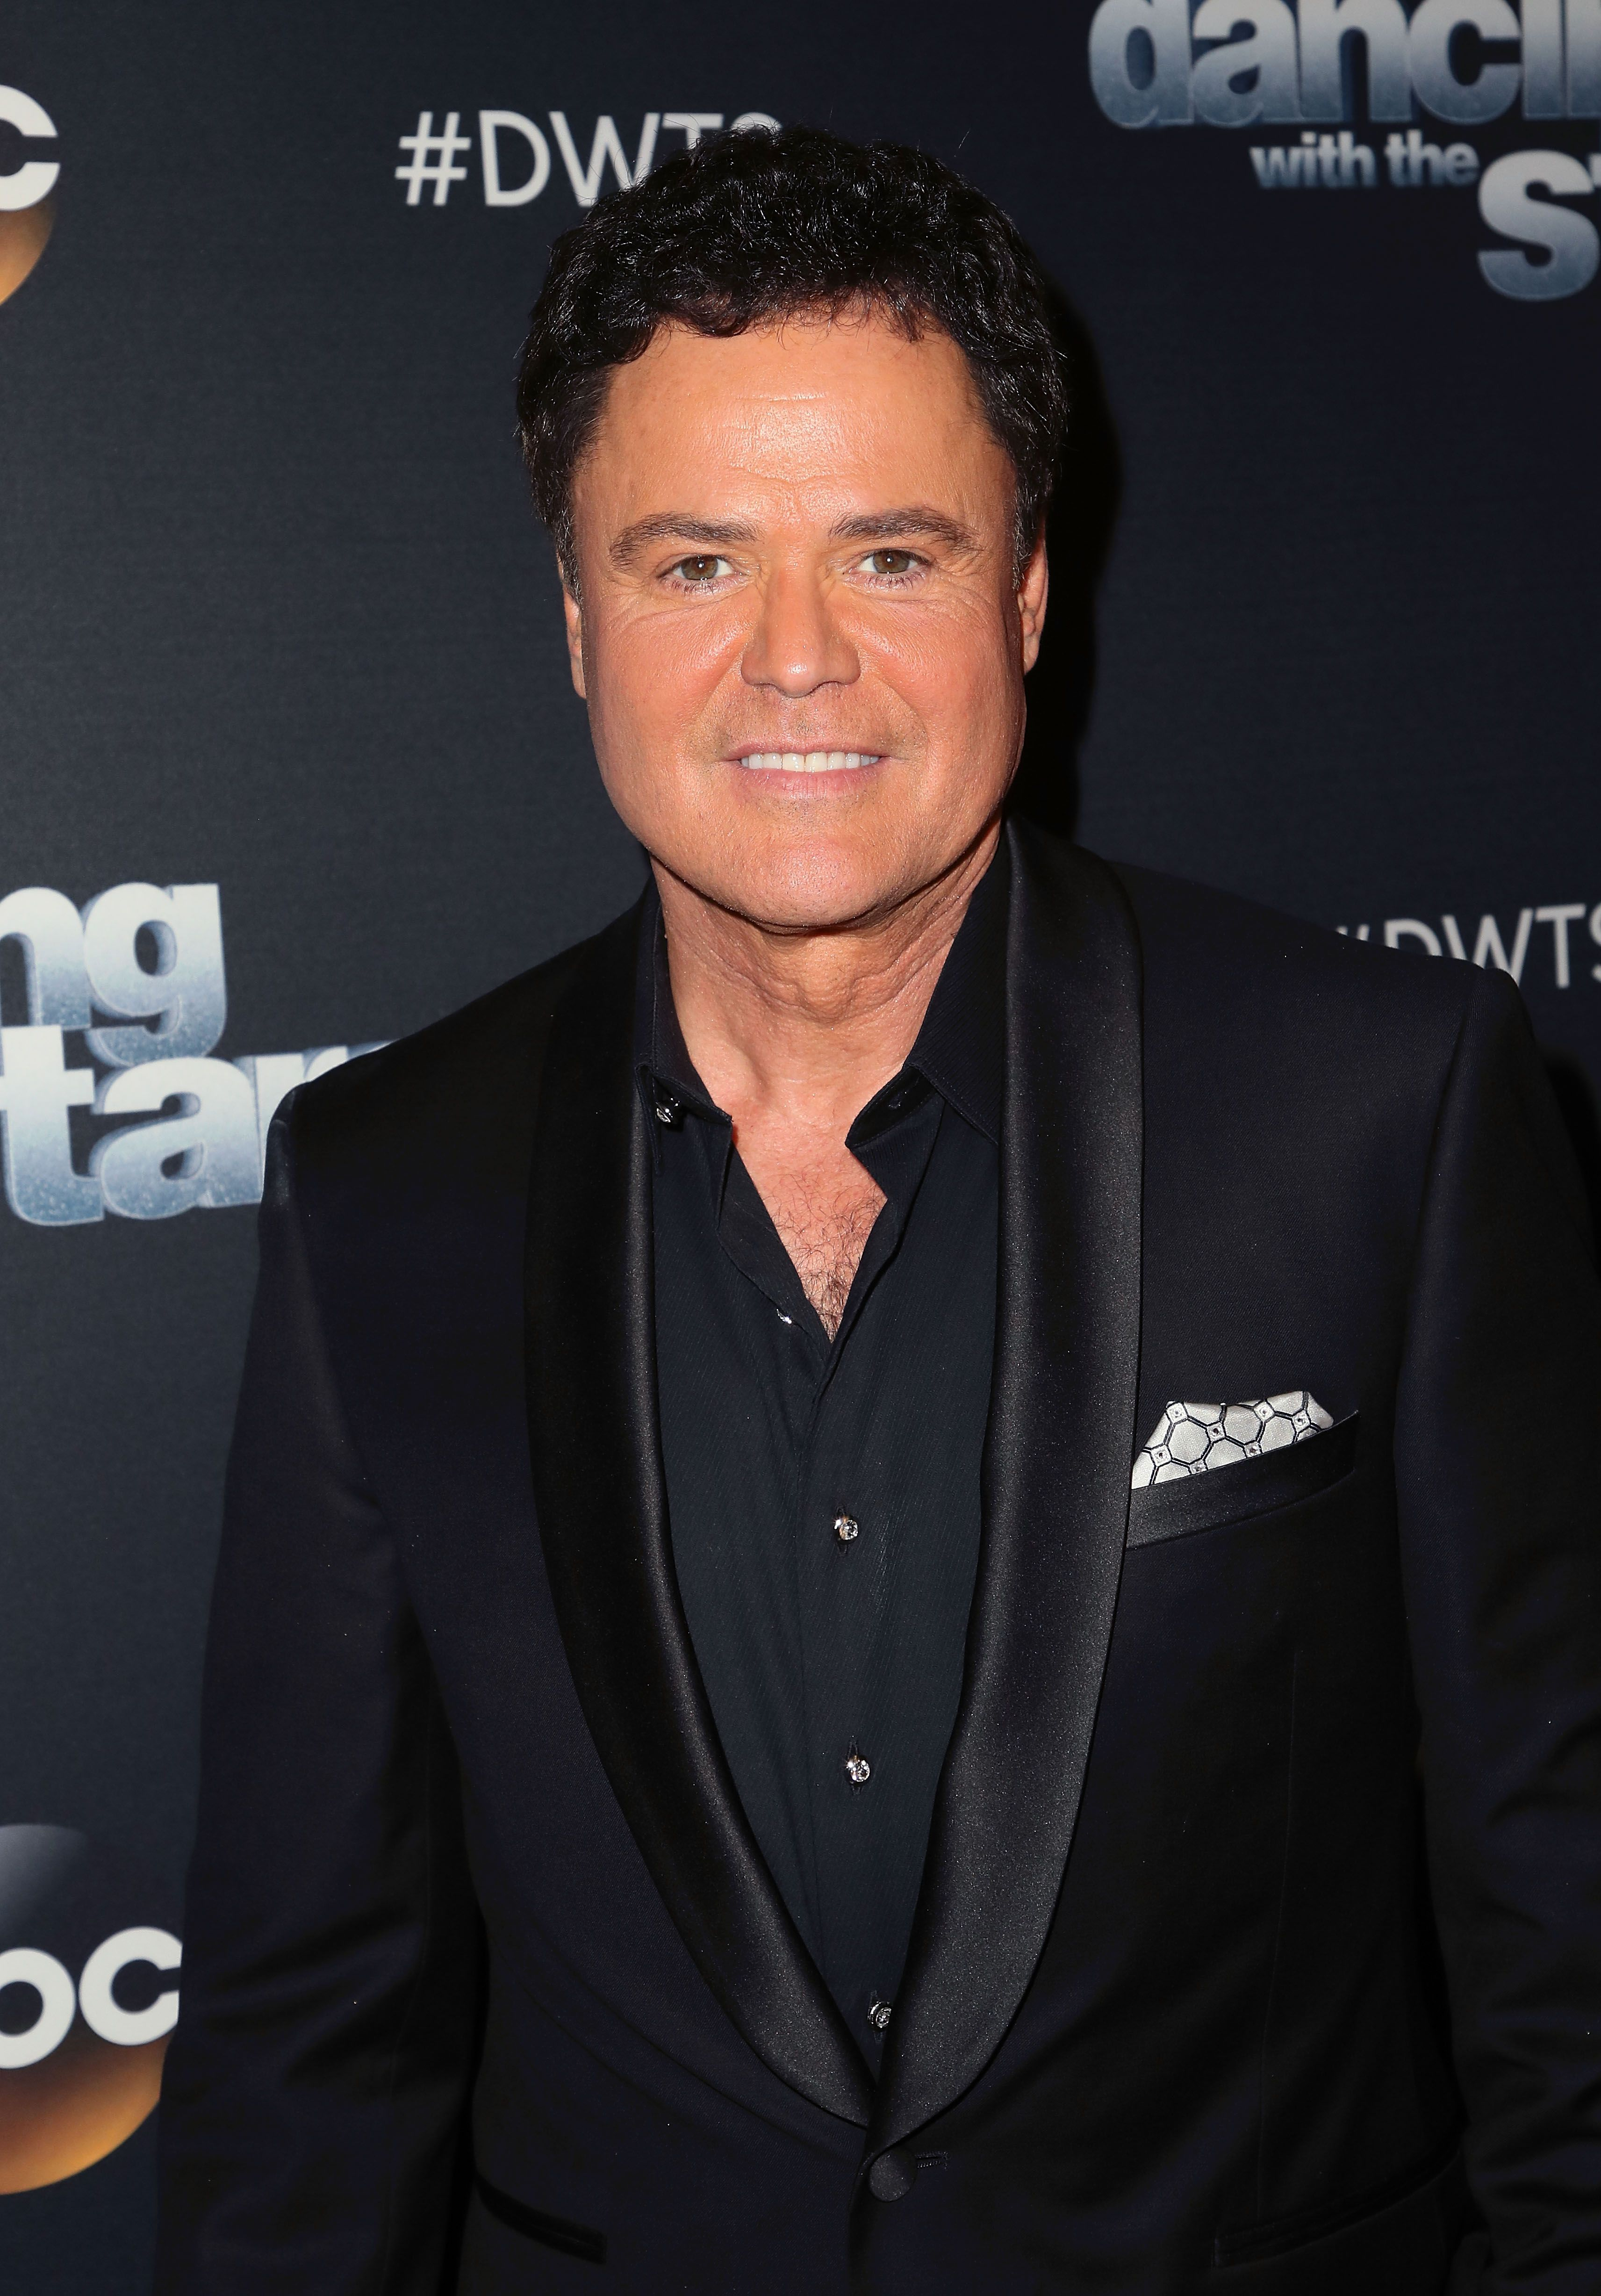 """Donny Osmond poses at """"Dancing with the Stars"""" Season 27 at CBS Televison City on October 2, 2018 in Los Angeles, California   Photo: Getty Images"""